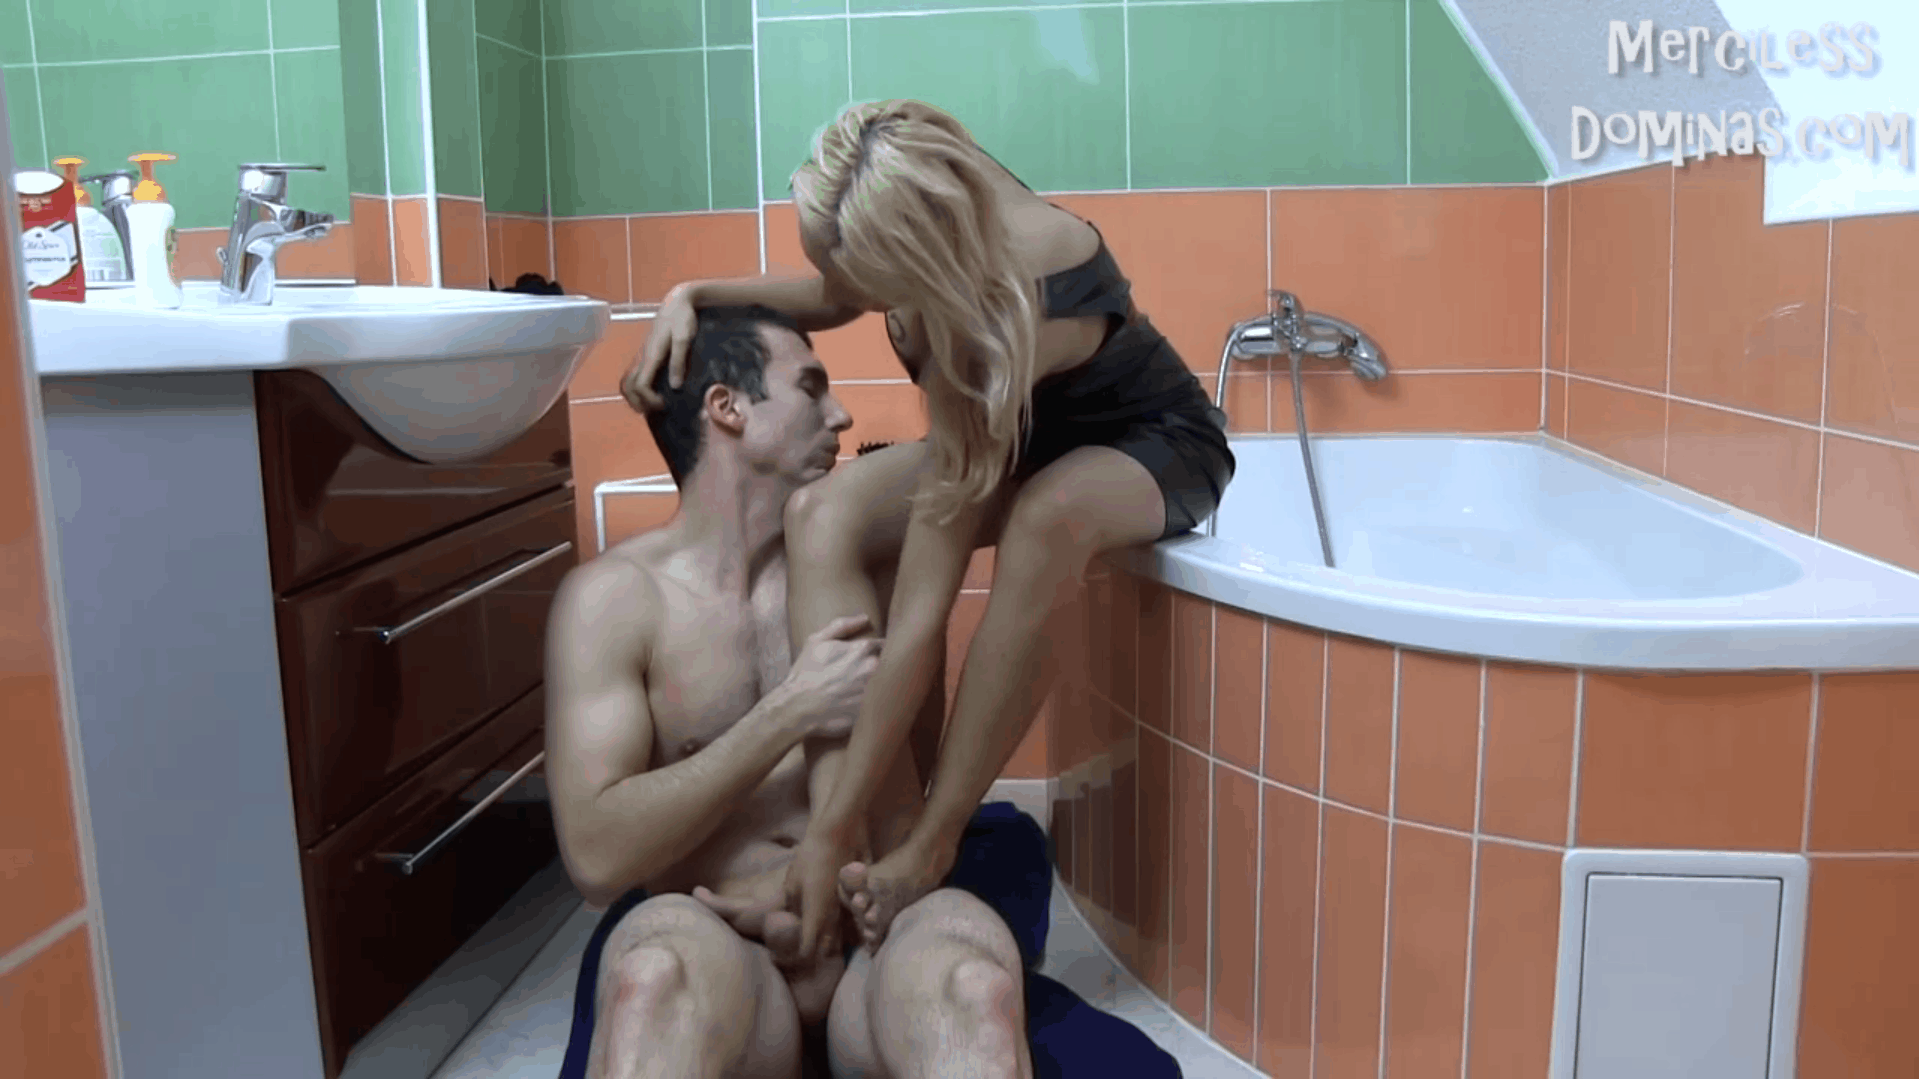 Foot Fetish And Toilet Games